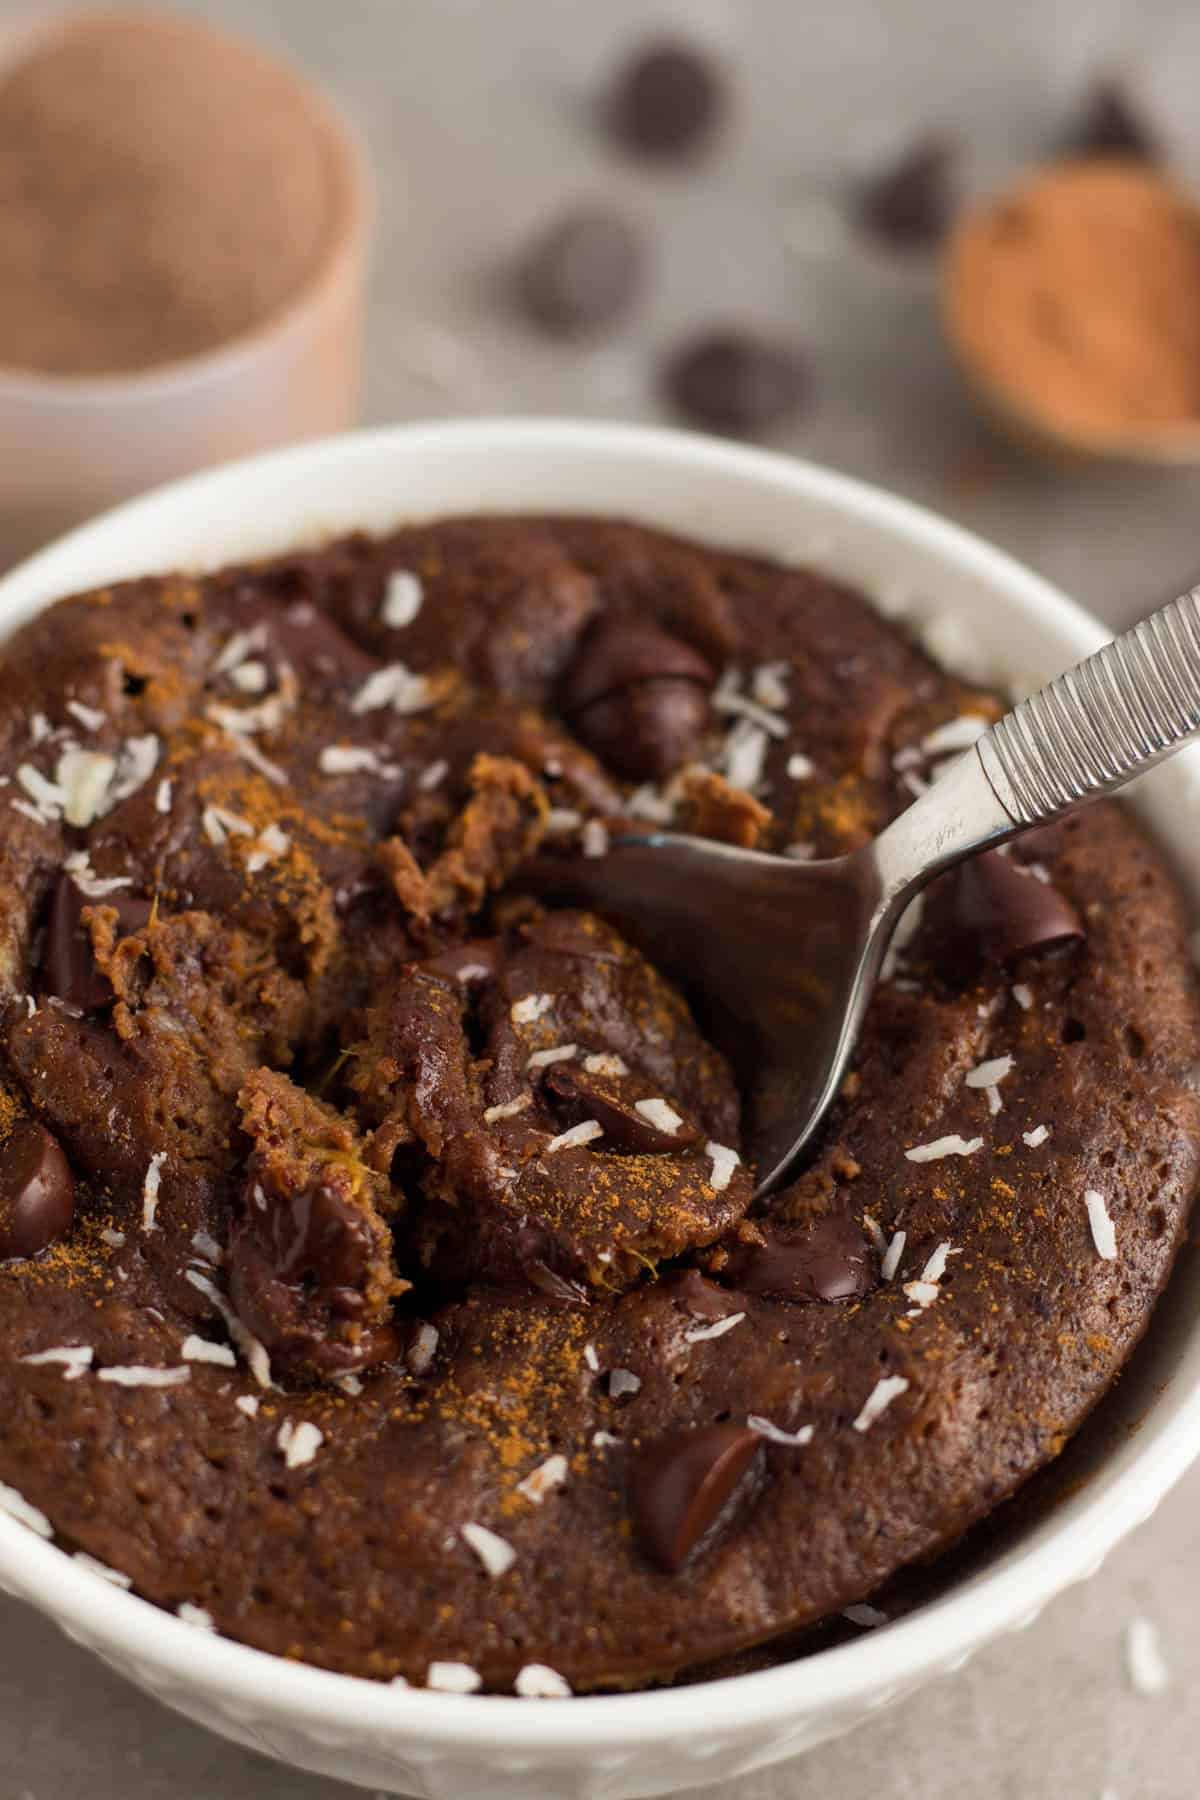 A spoon digging into a healthy chocolate protein mug cake topped with cinnamon and coconut